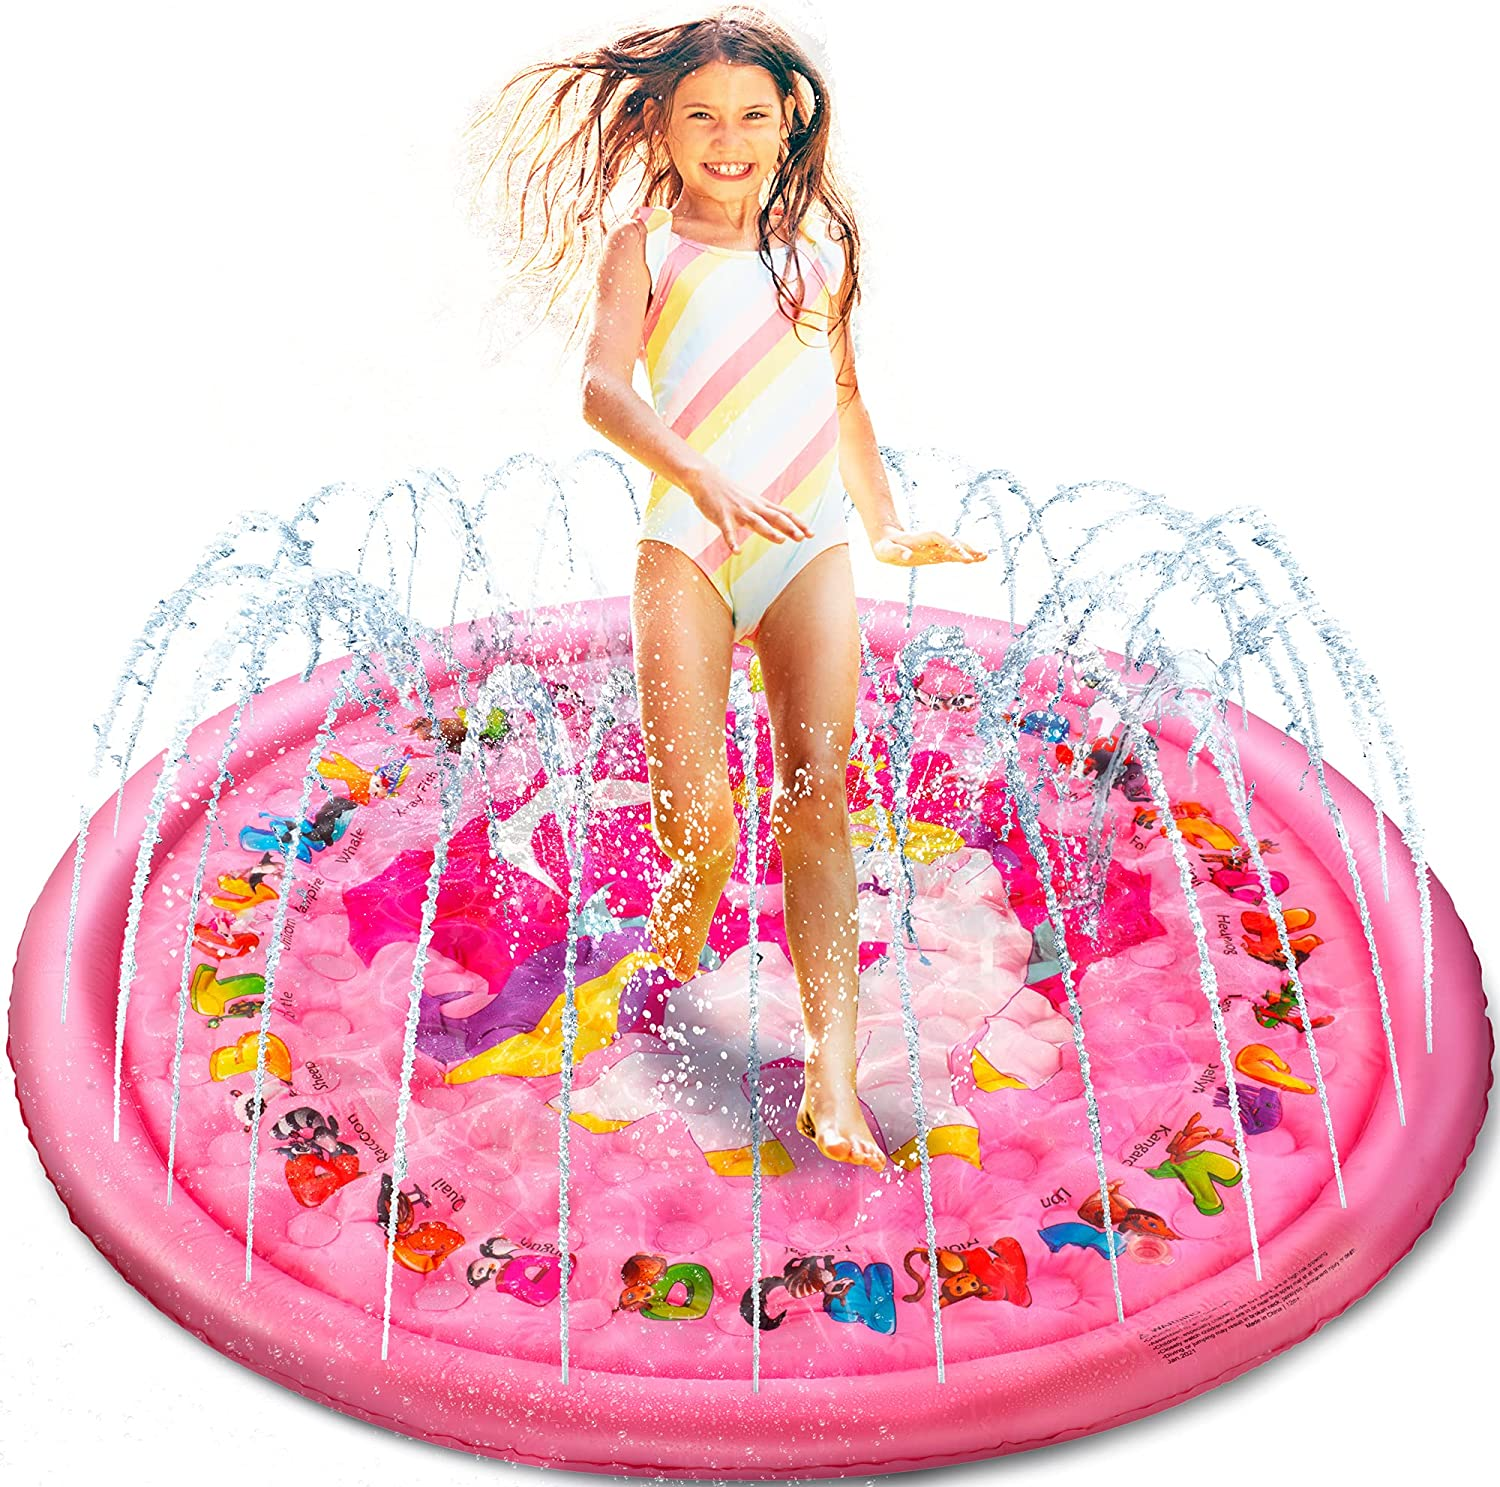 Splash Pads for Courier shipping free Toddlers Ages 1-3 Baby Super beauty product restock quality top! Kids 8-12 Wading